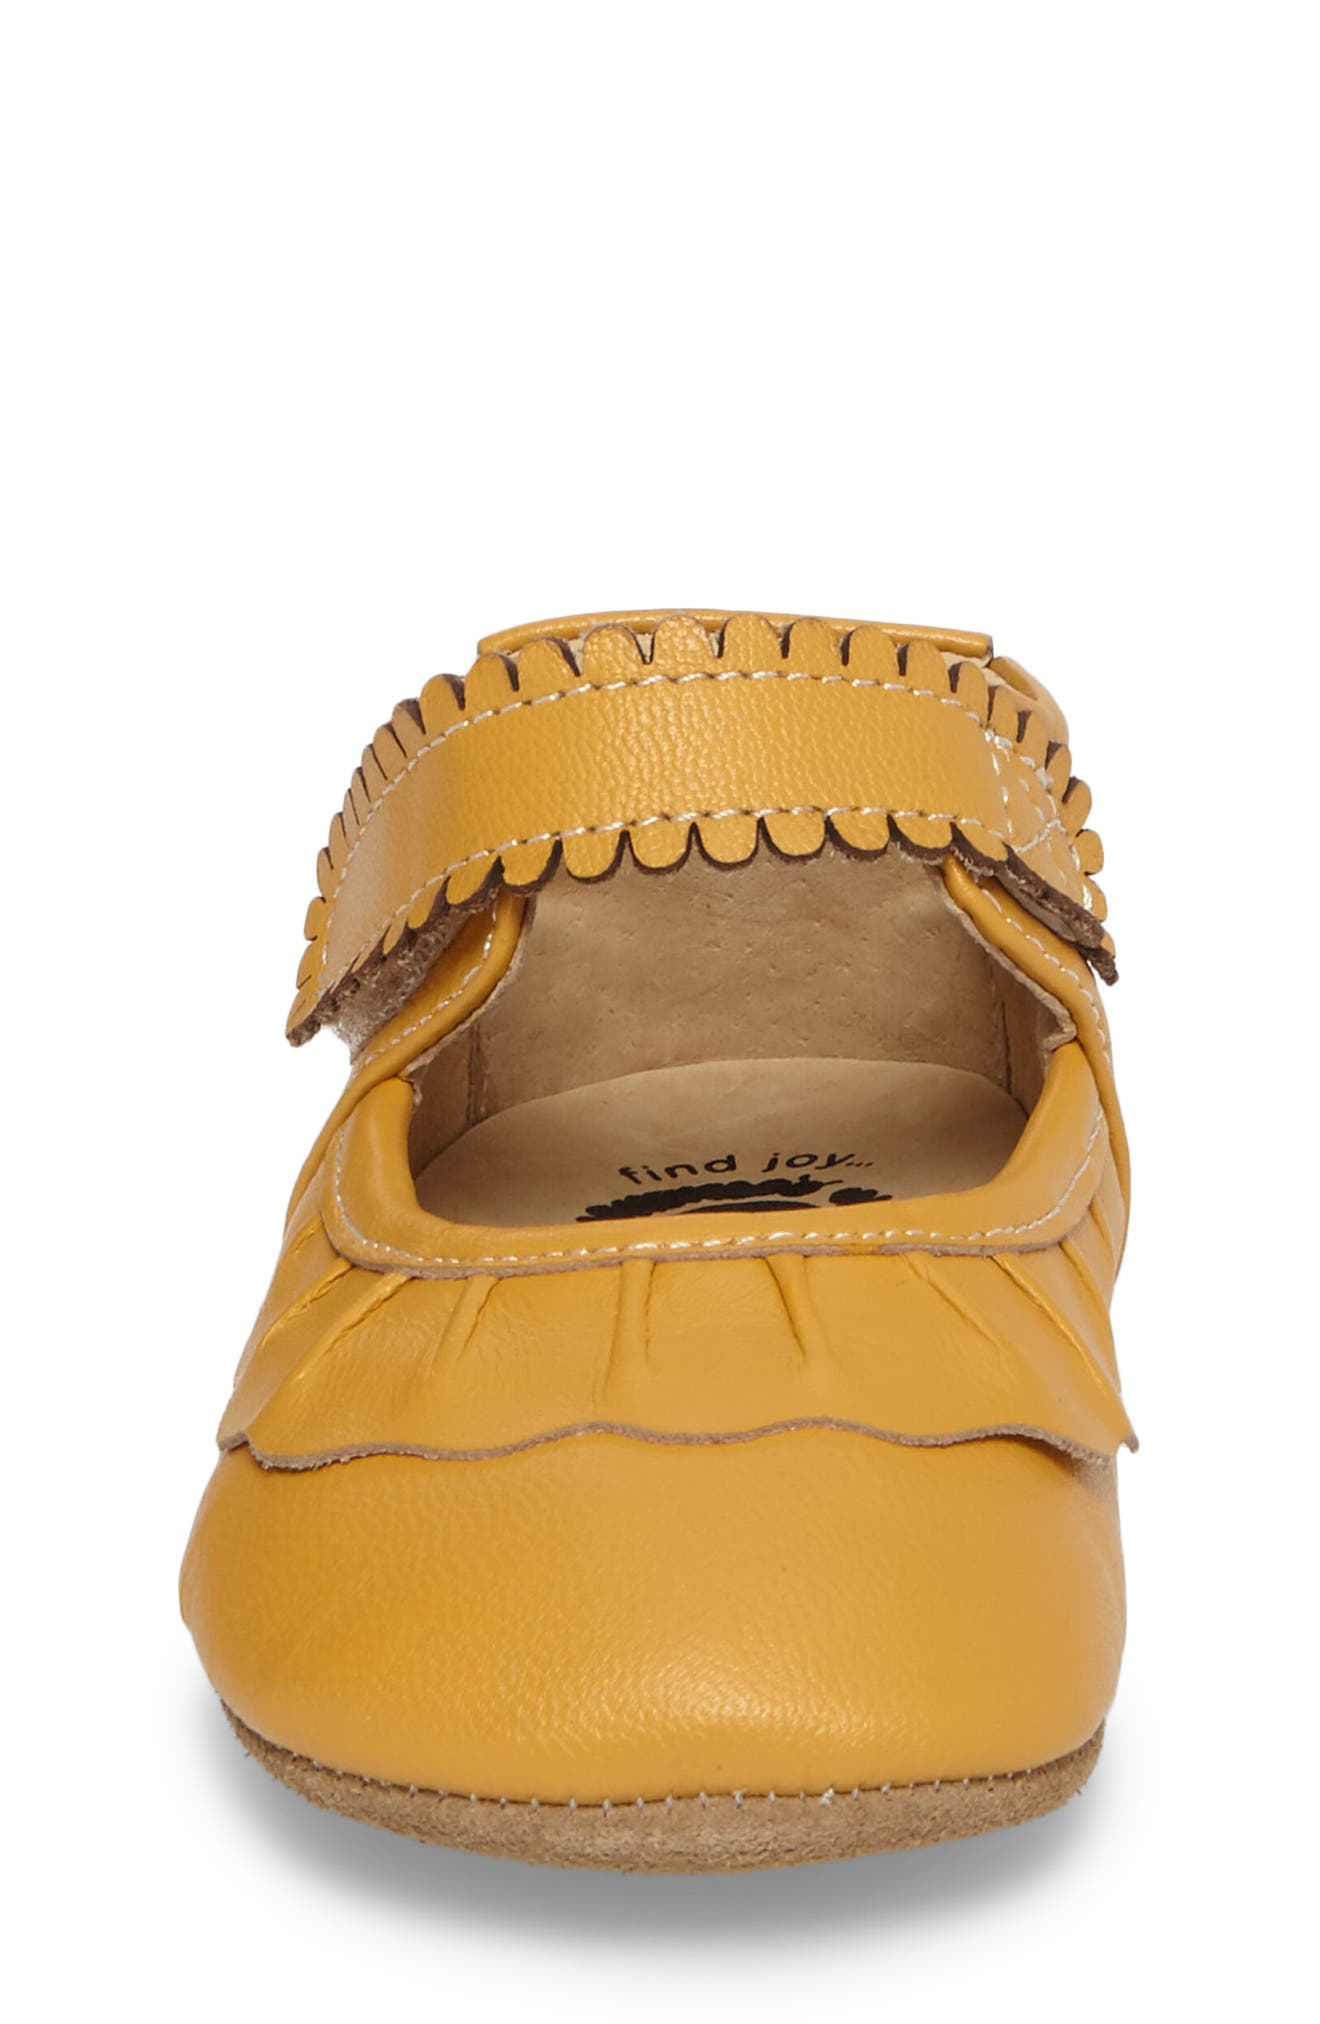 'Ruche' Mary Jane Crib Shoe,                             Alternate thumbnail 4, color,                             BUTTERSCOTCH LEATHER